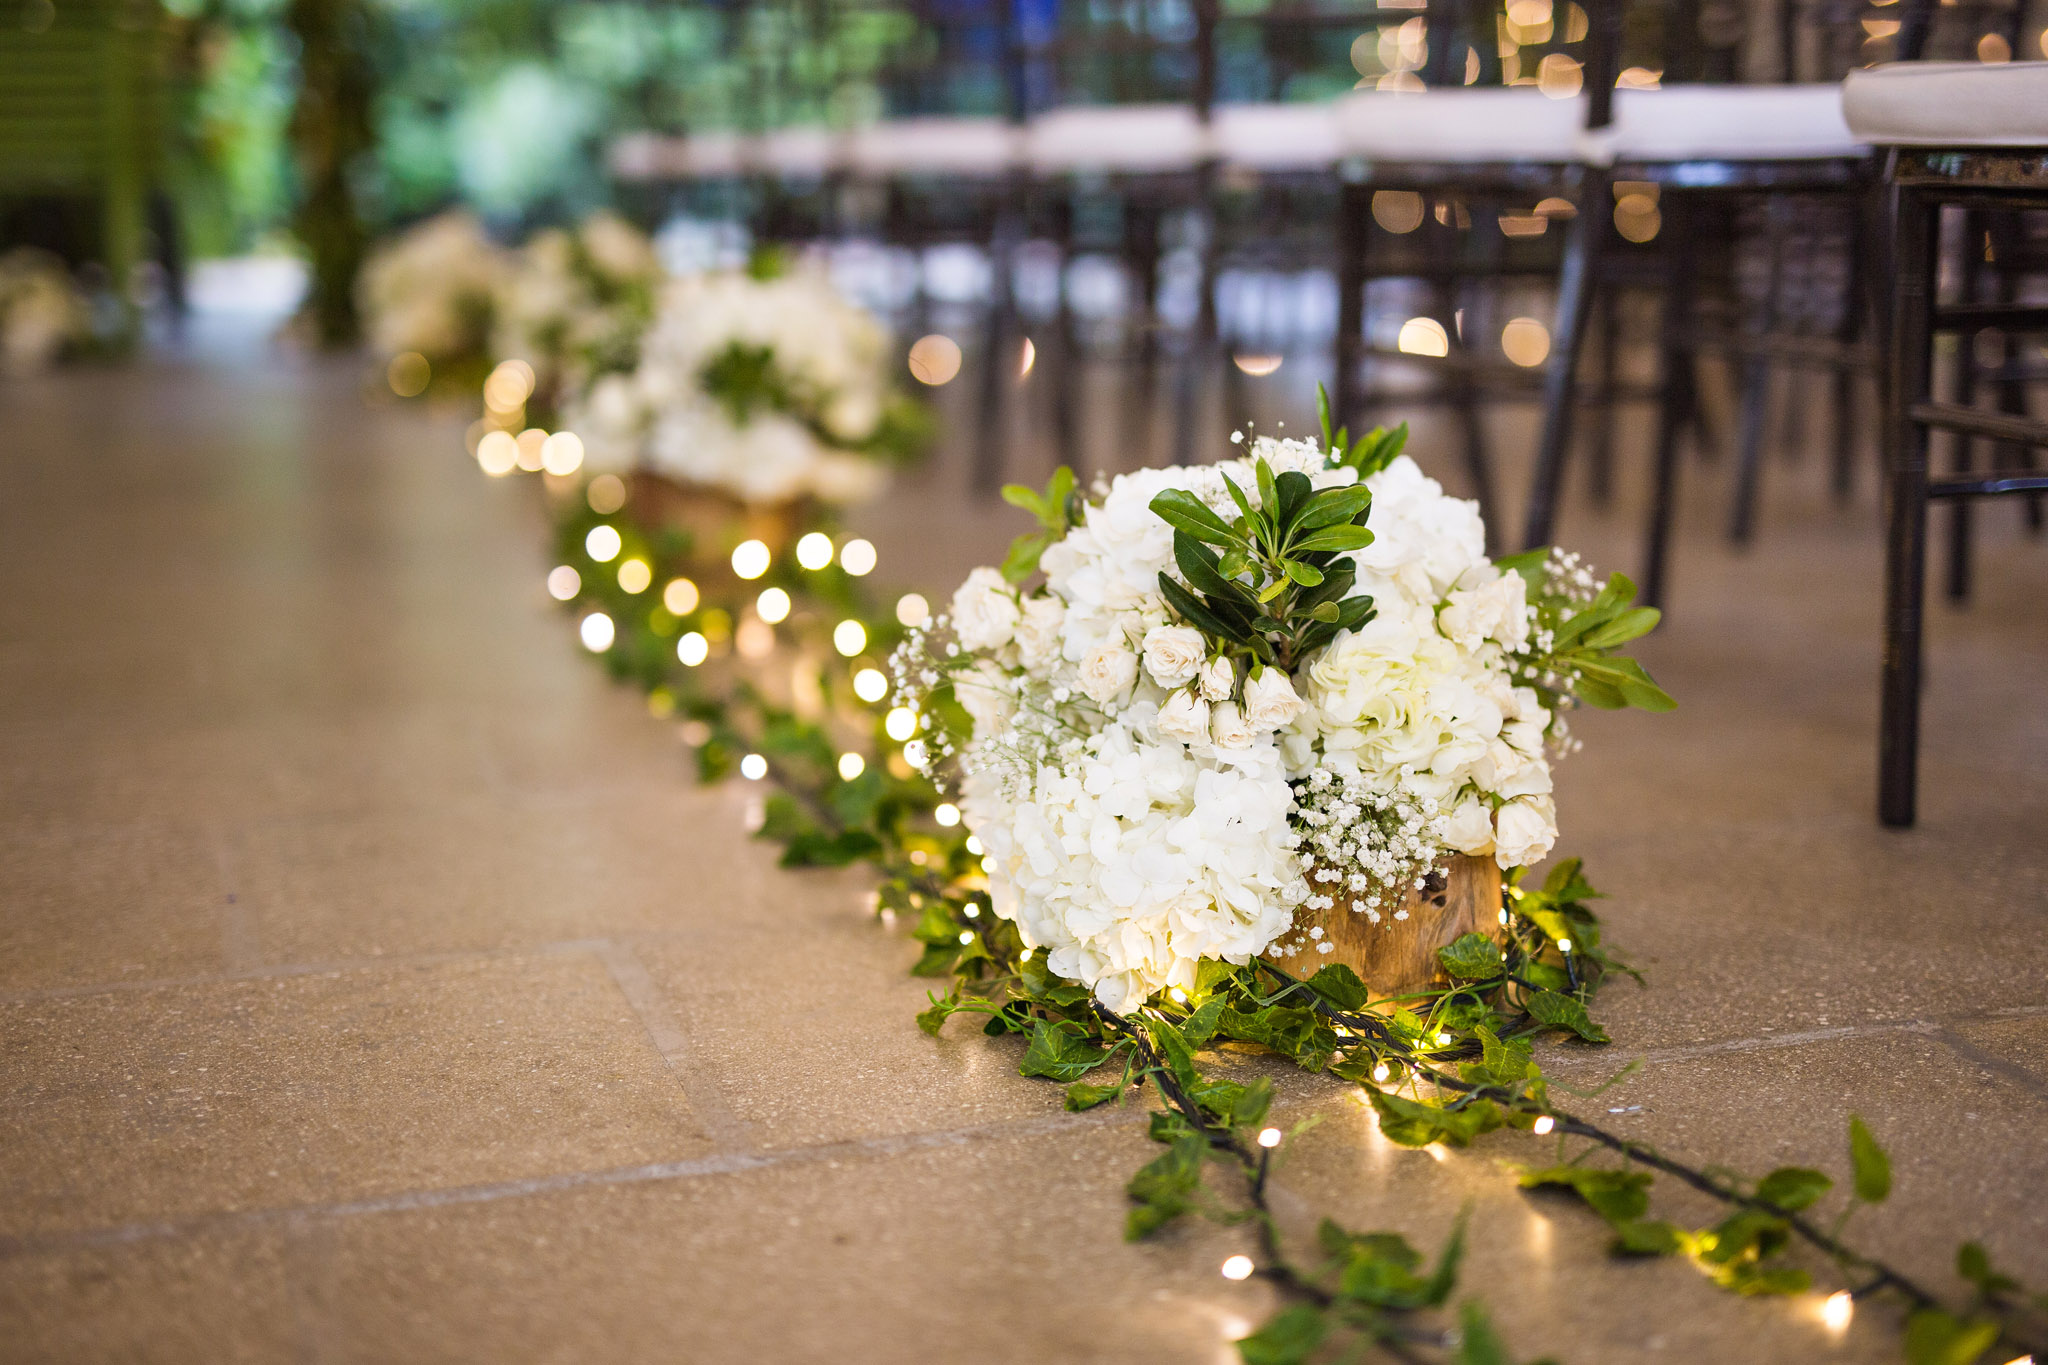 wedding-travellers-destination-wedding-photography-colombia-medellin-chuscalito-decoration-white-rose